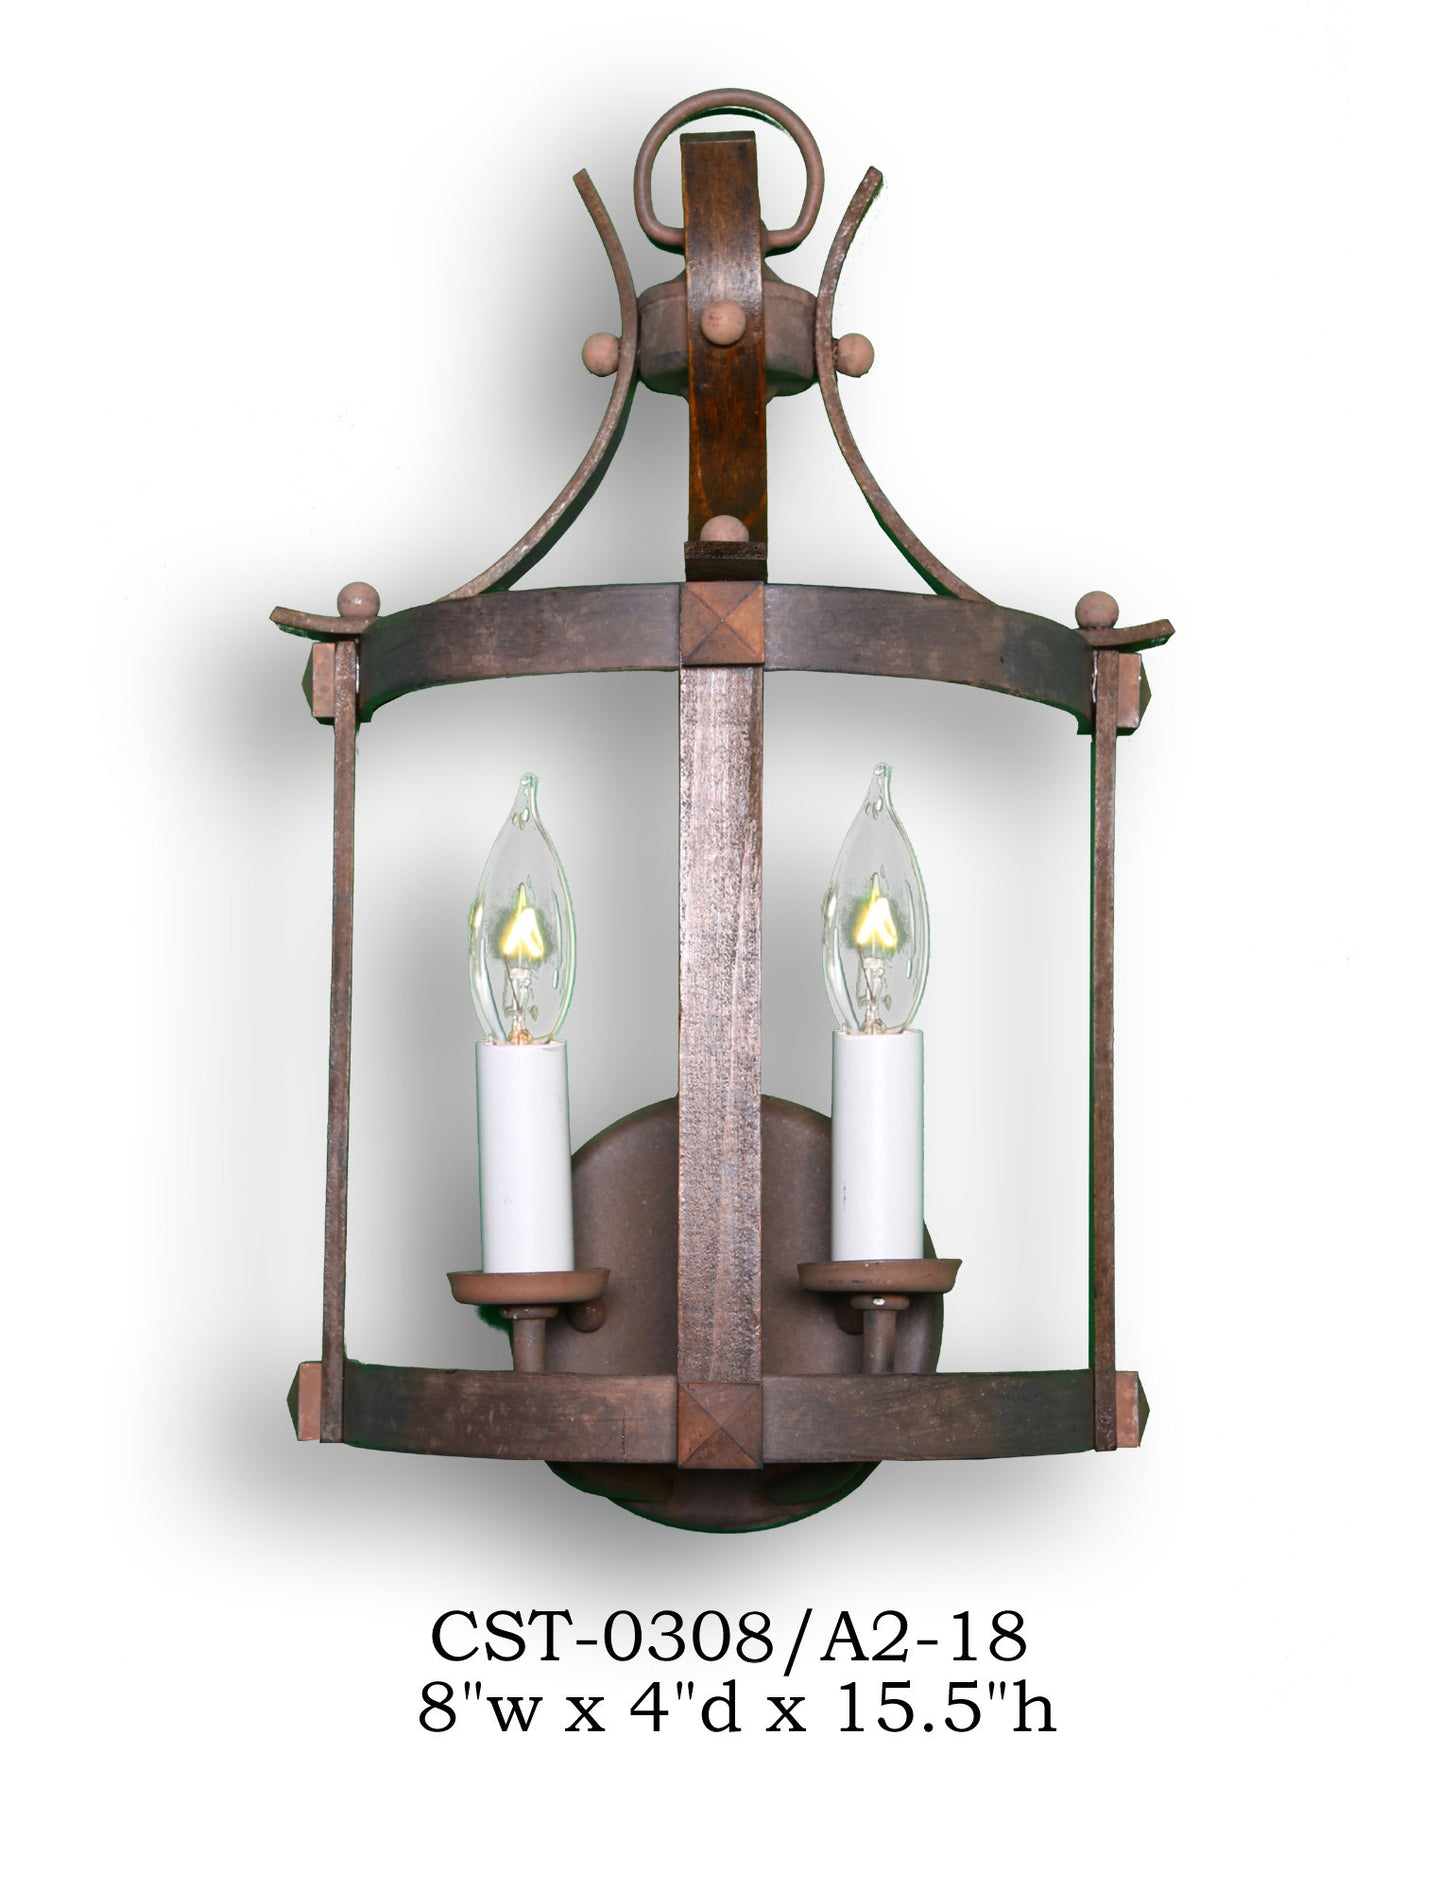 Wood Sconce - CST-0308/A2-18Sconce - Graham's Lighting Memphis, TN